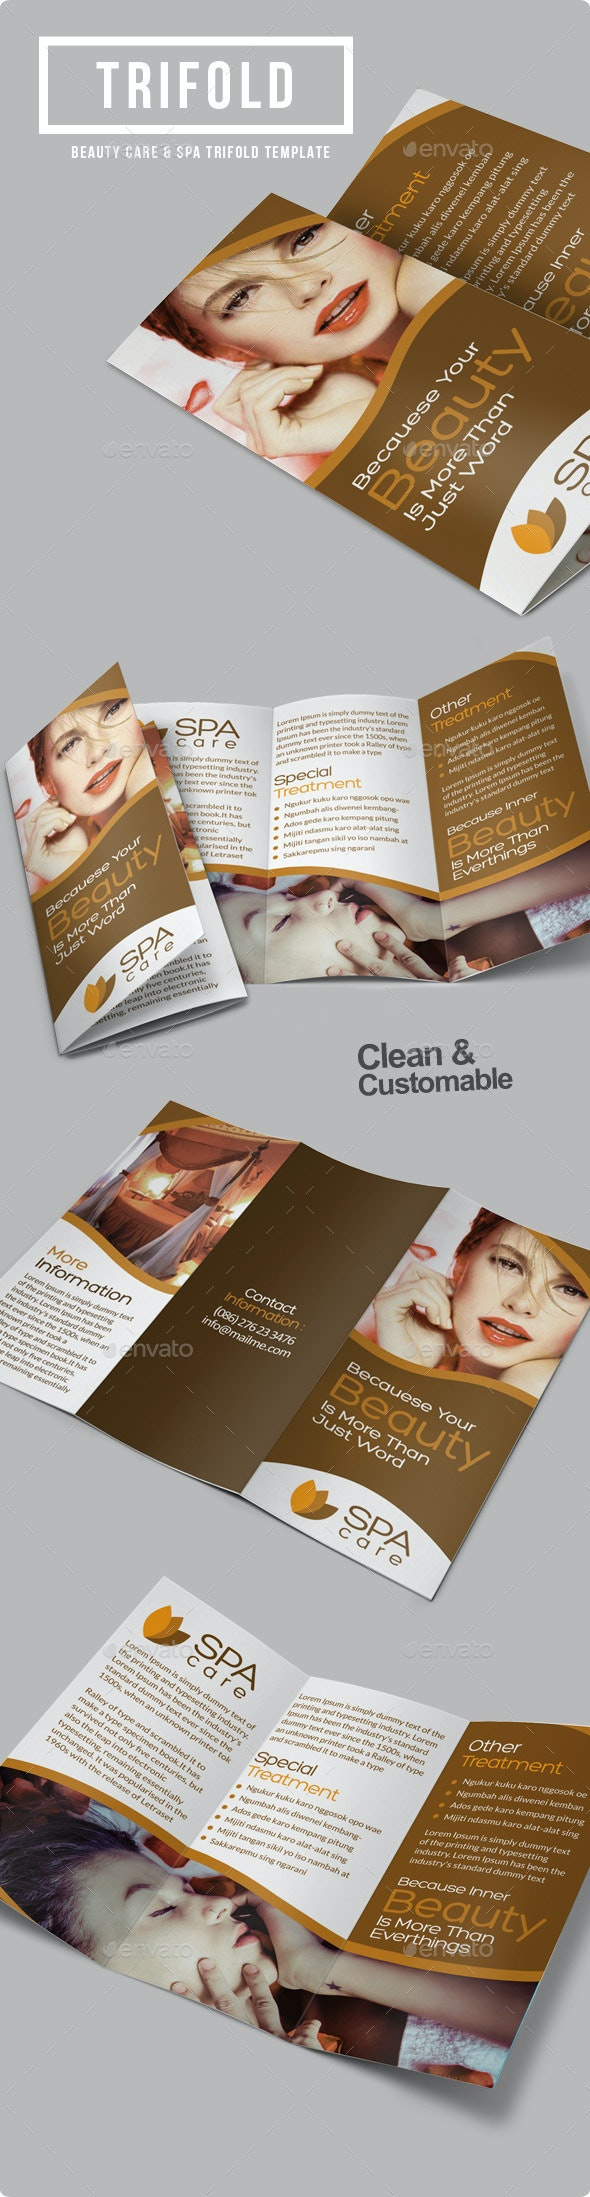 Beauty Care Spa Trifold Brochure - Informational Brochures